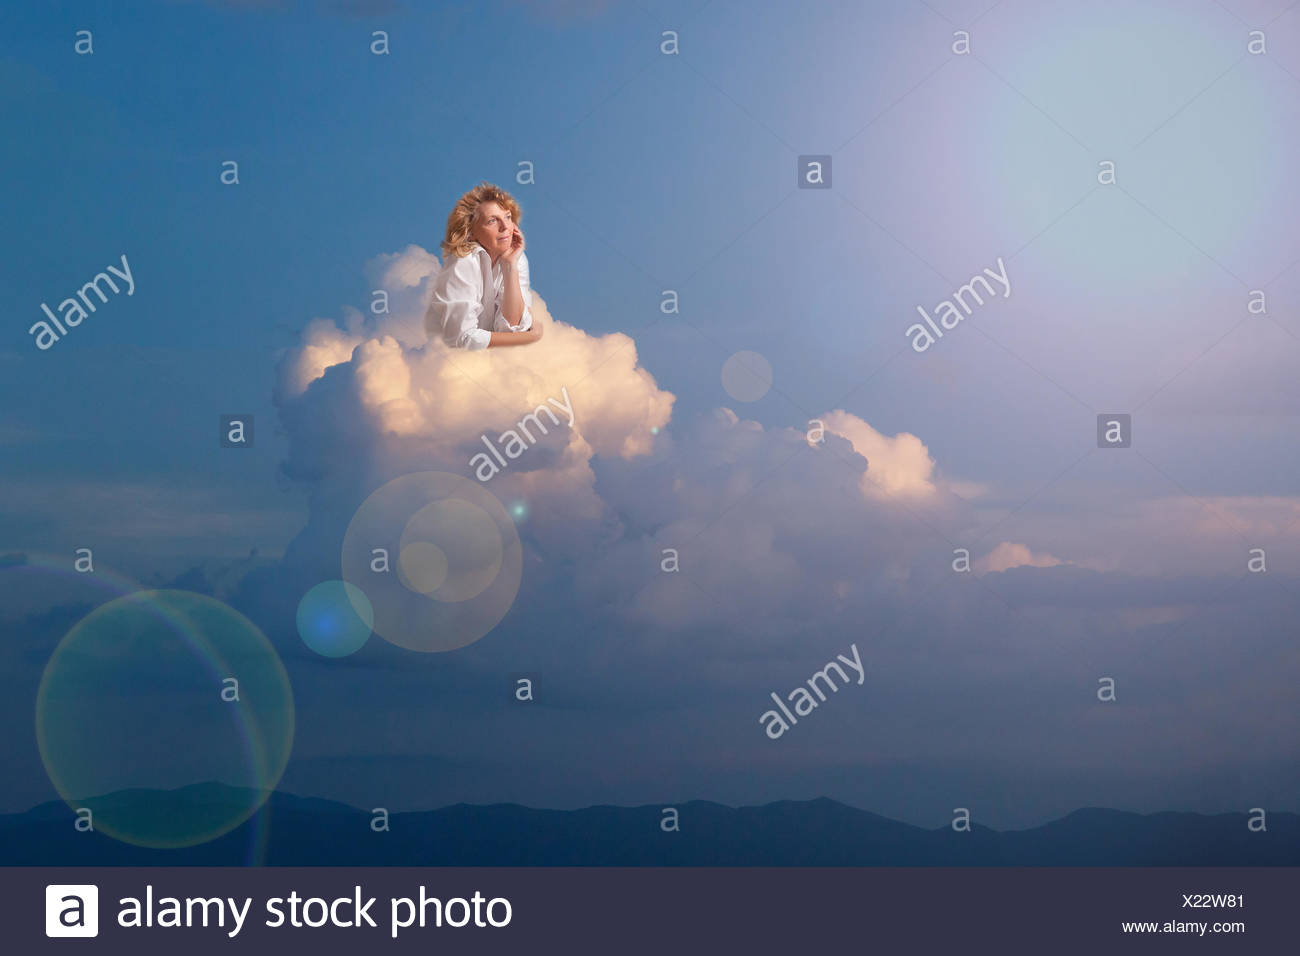 Blonde woman dreaming on cloud - Stock Image